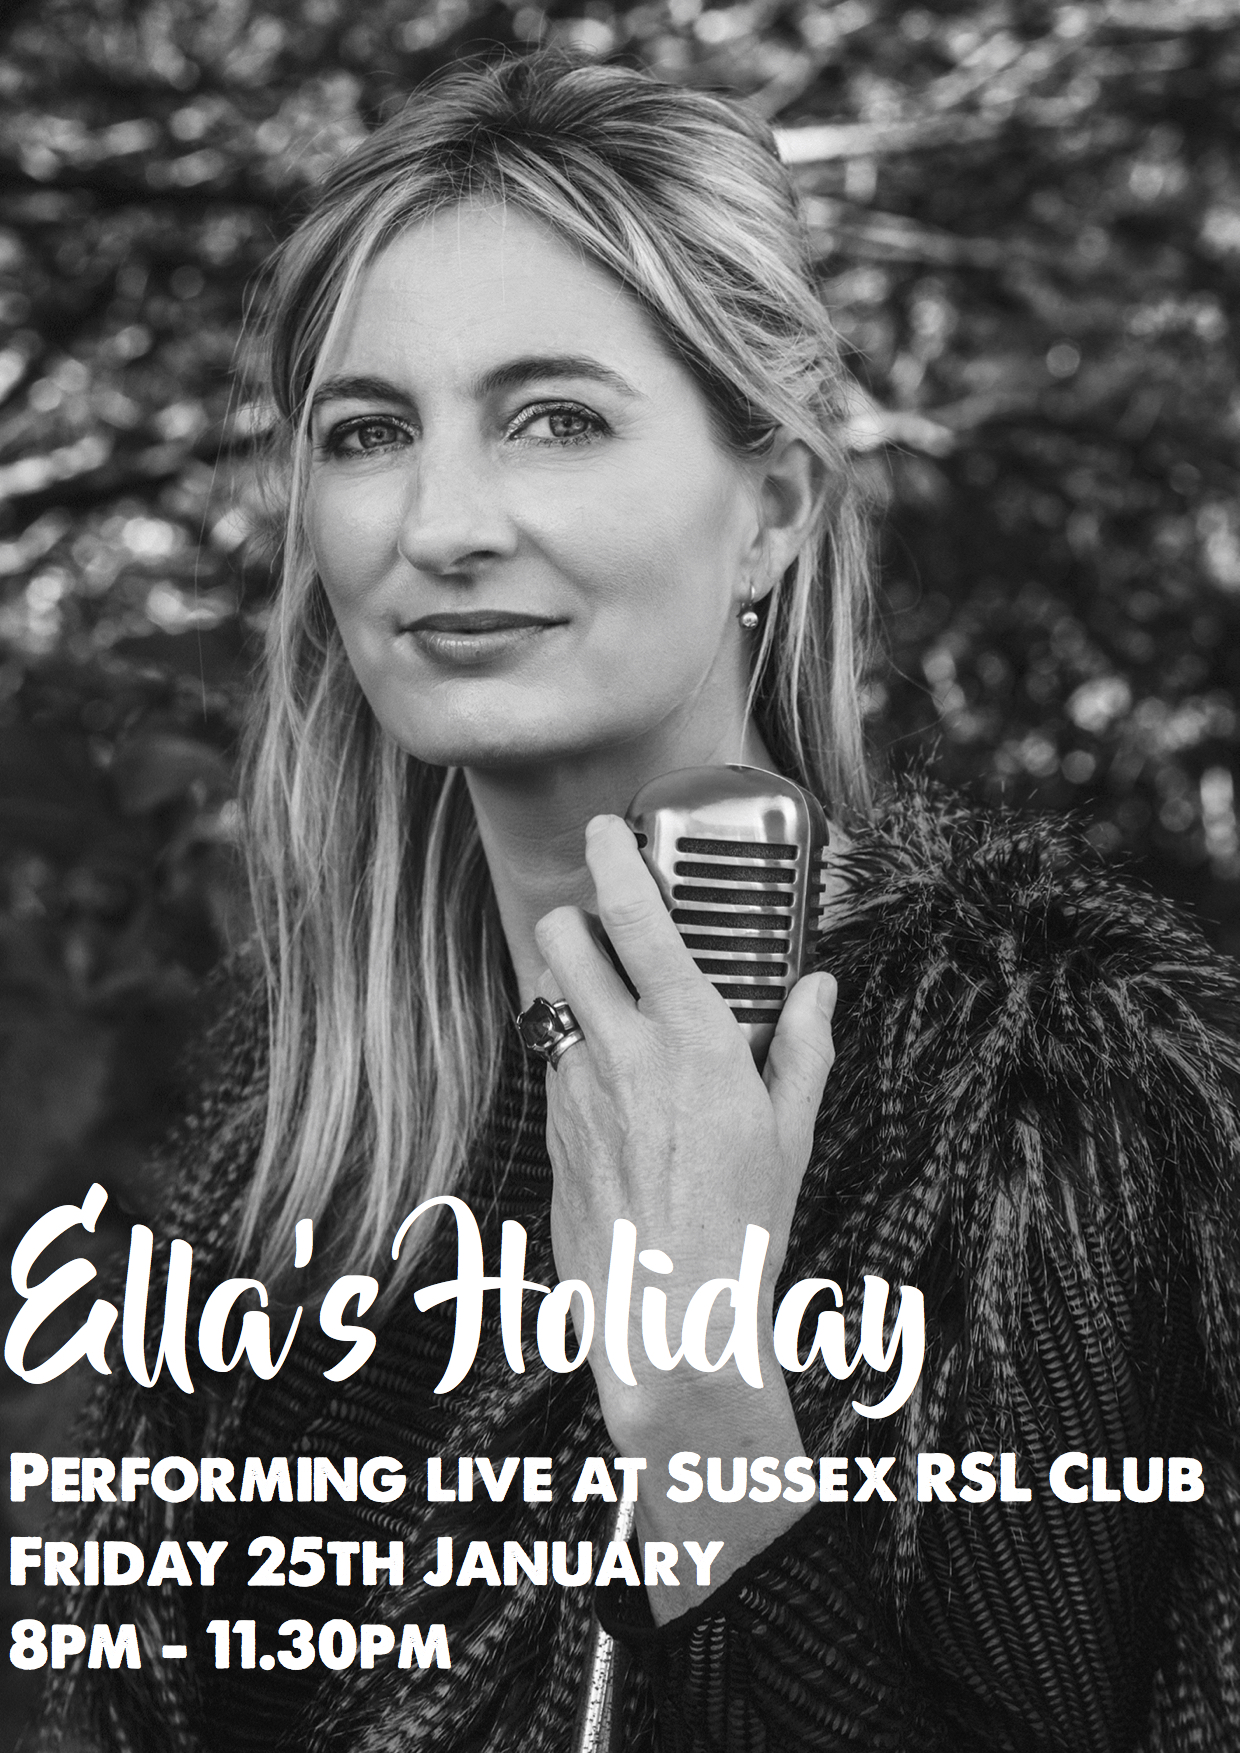 ellas holiday fri 25th jan